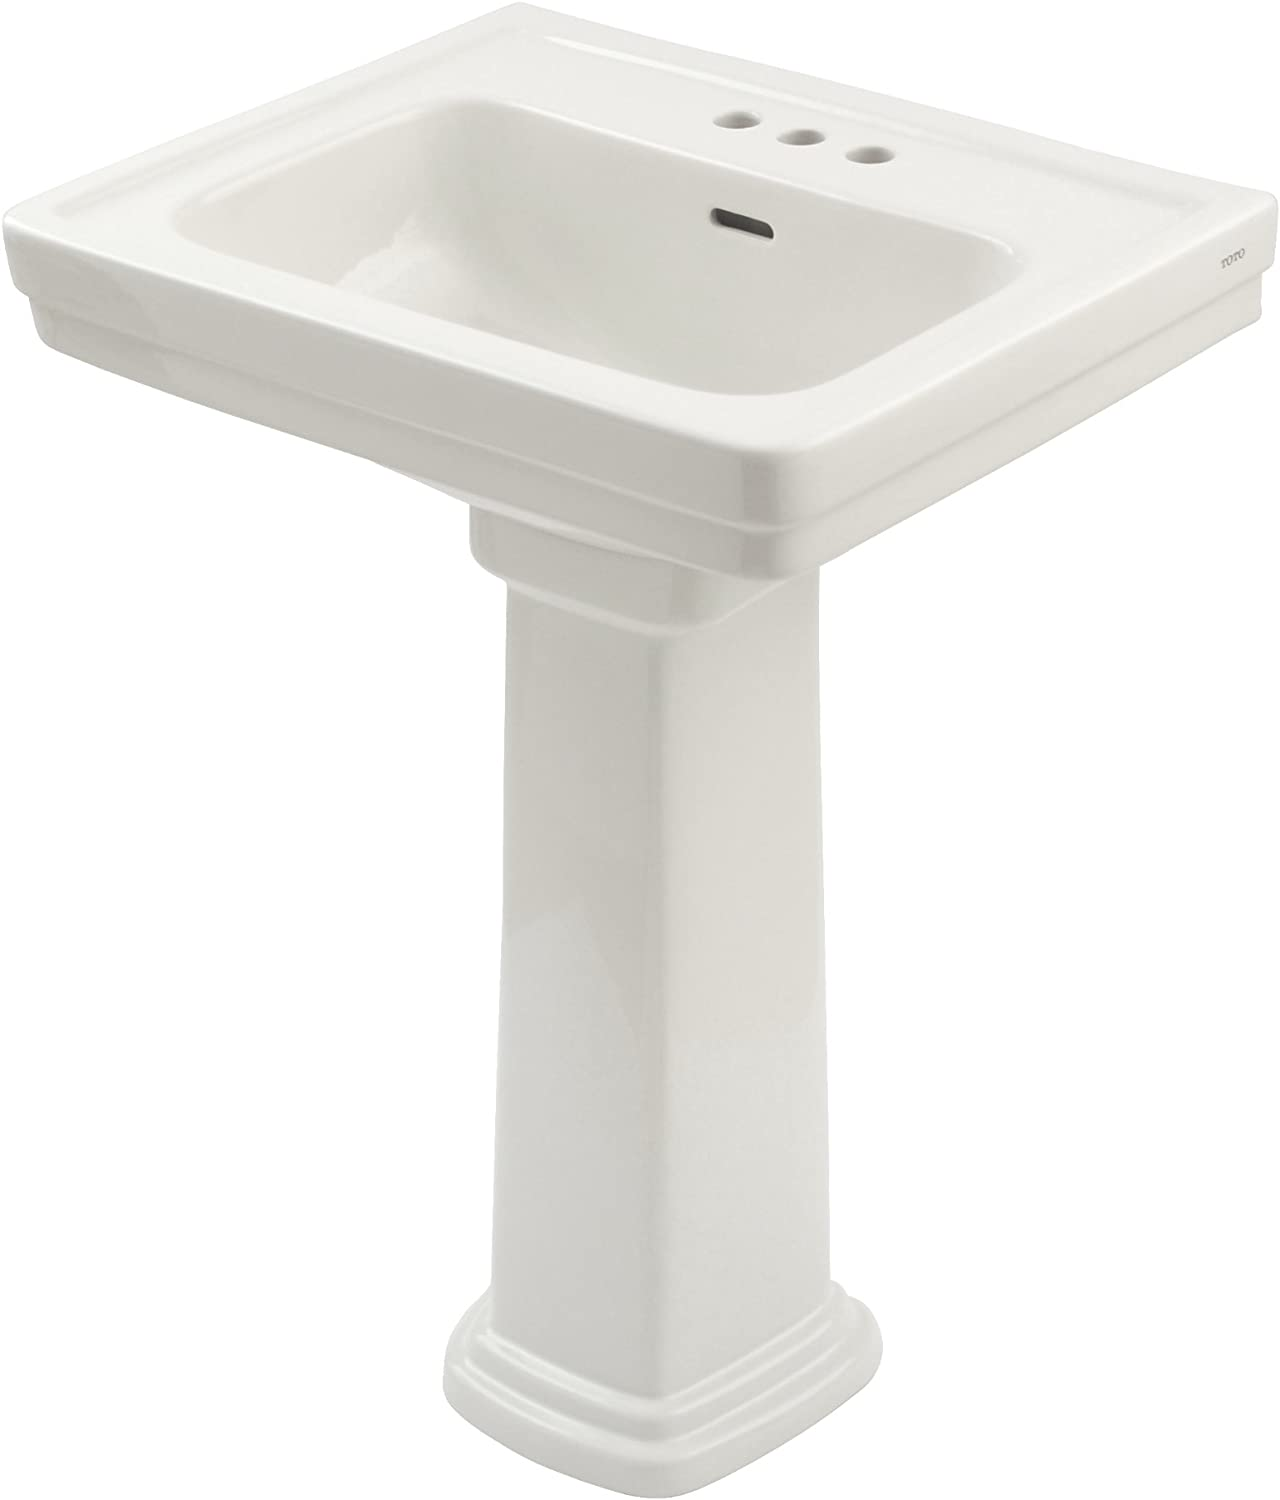 TOTO LPT532.4N#01 Promenade Lavatory and with Ce Houston Mall Pedestal 4-Inch Spring new work